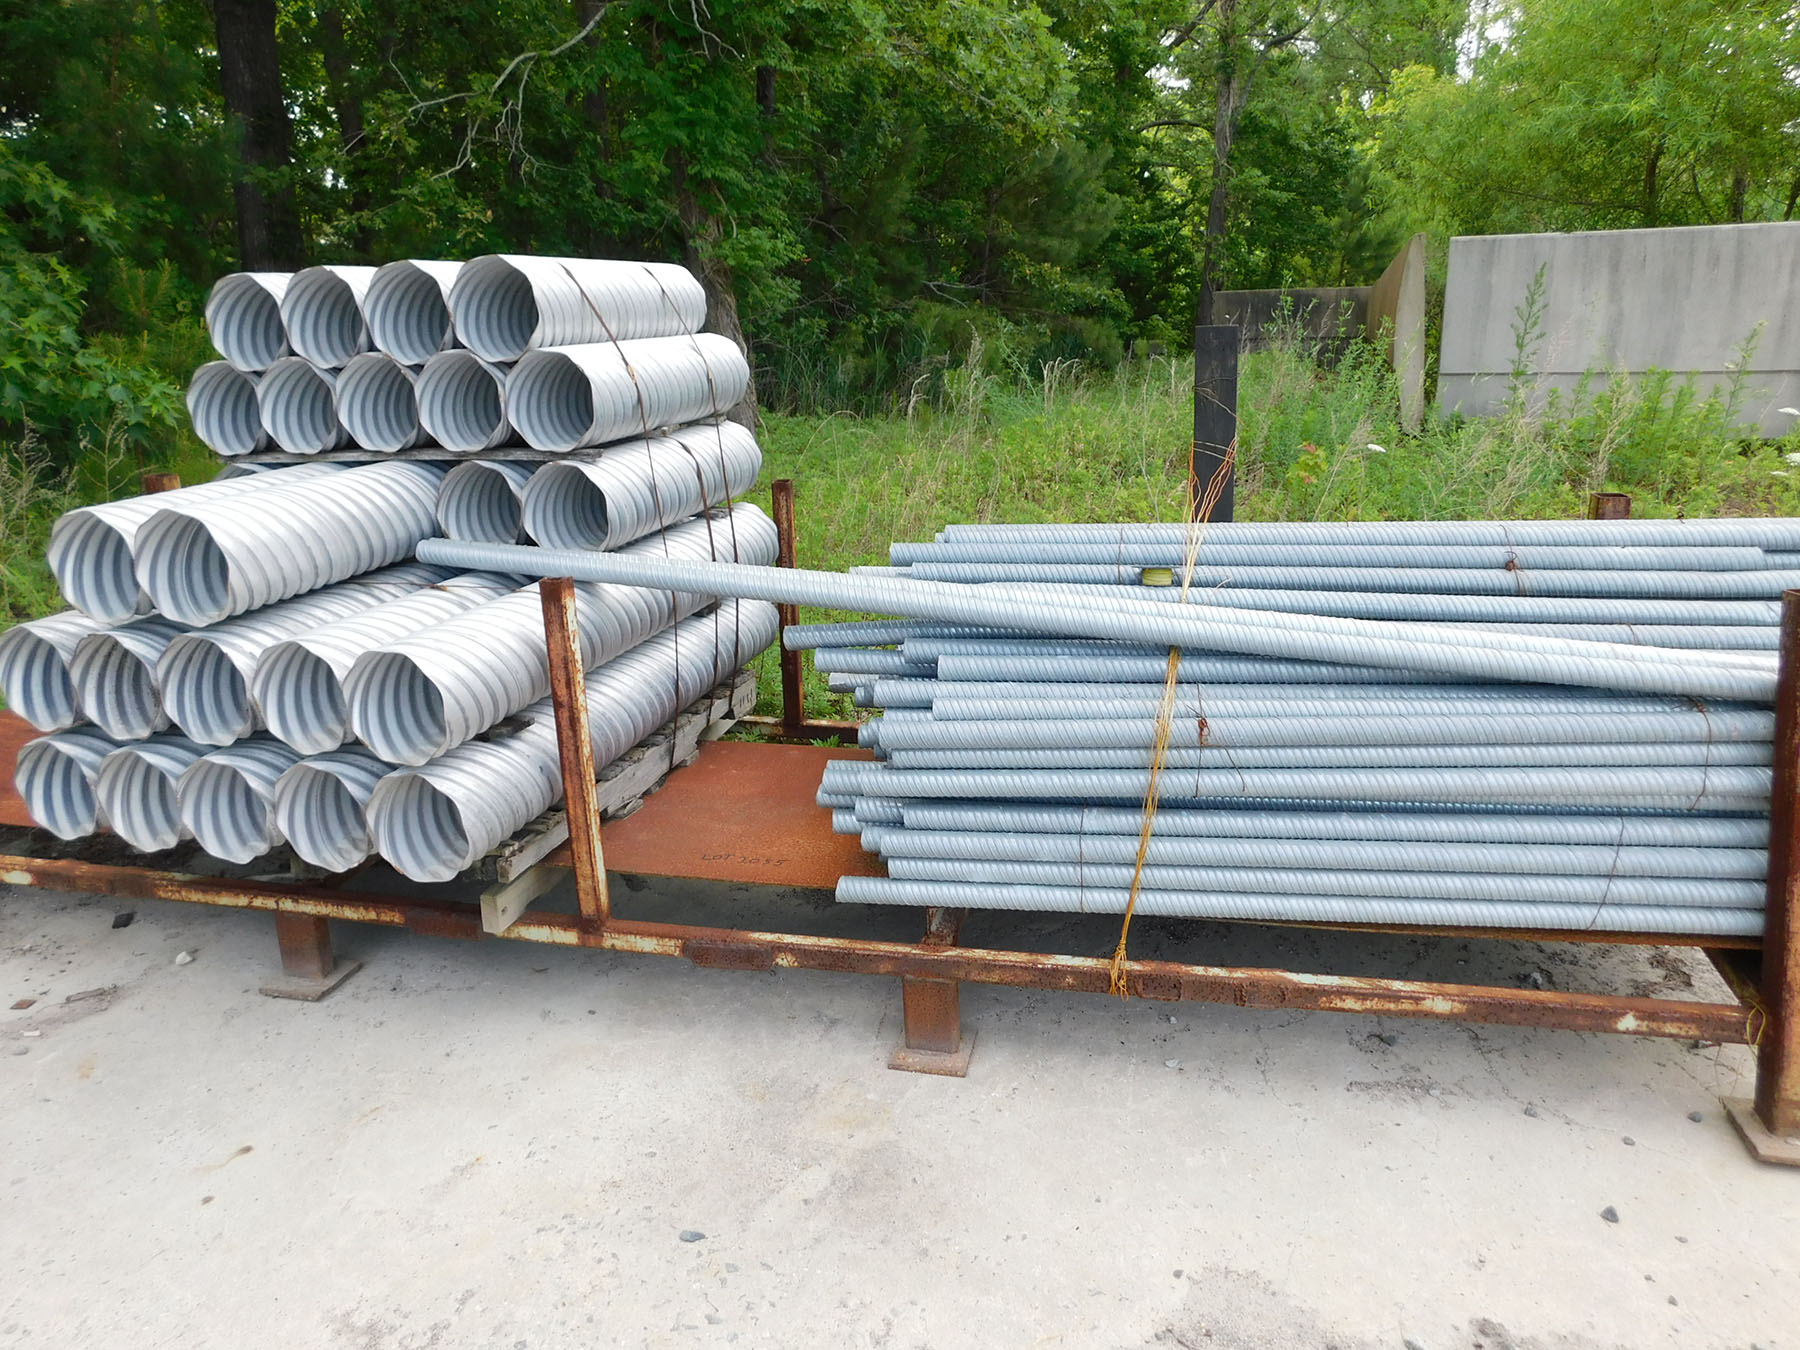 Lot 2055 - LOT OF GALVANIZED STEEL PIPE & RACK